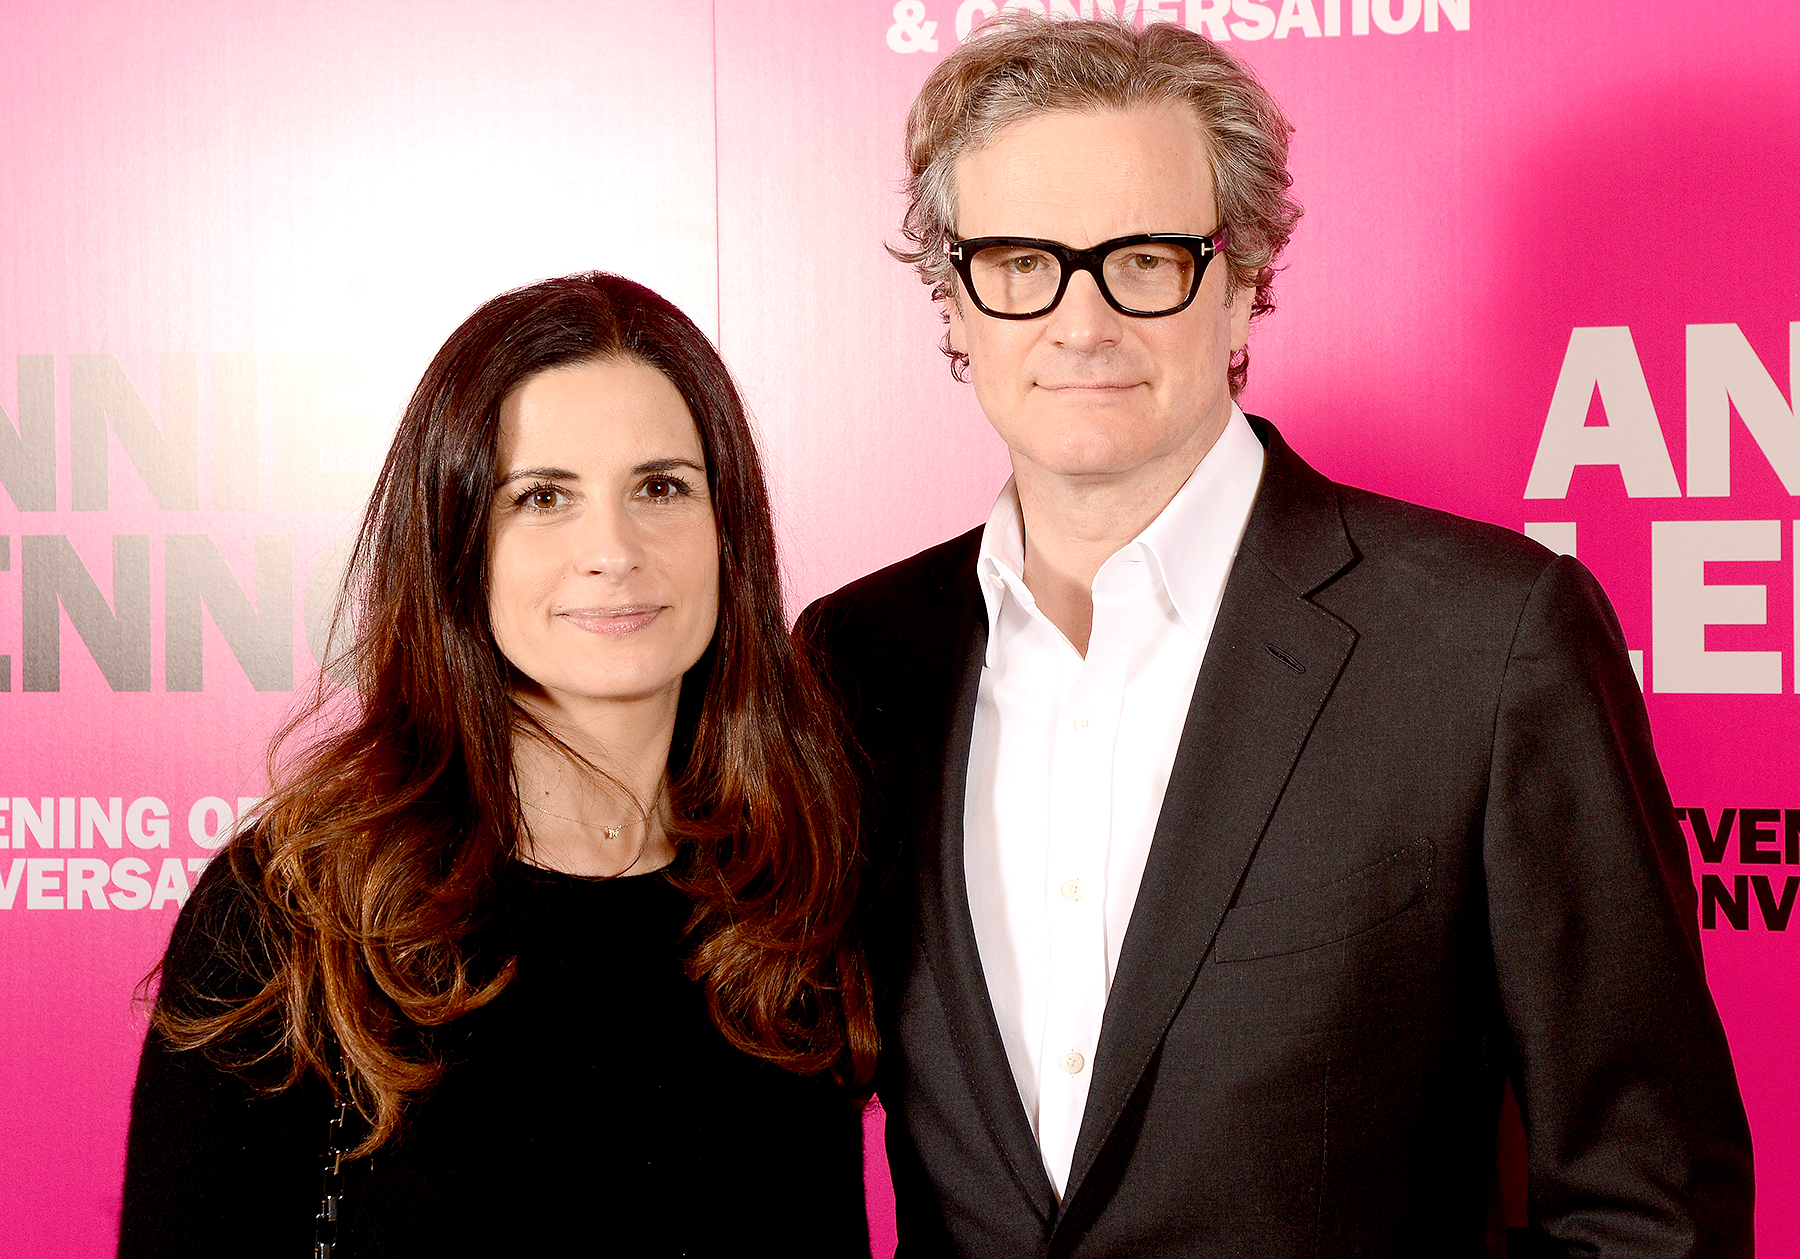 Colin Firth and wife Livia briefly split after 18 years of marriage